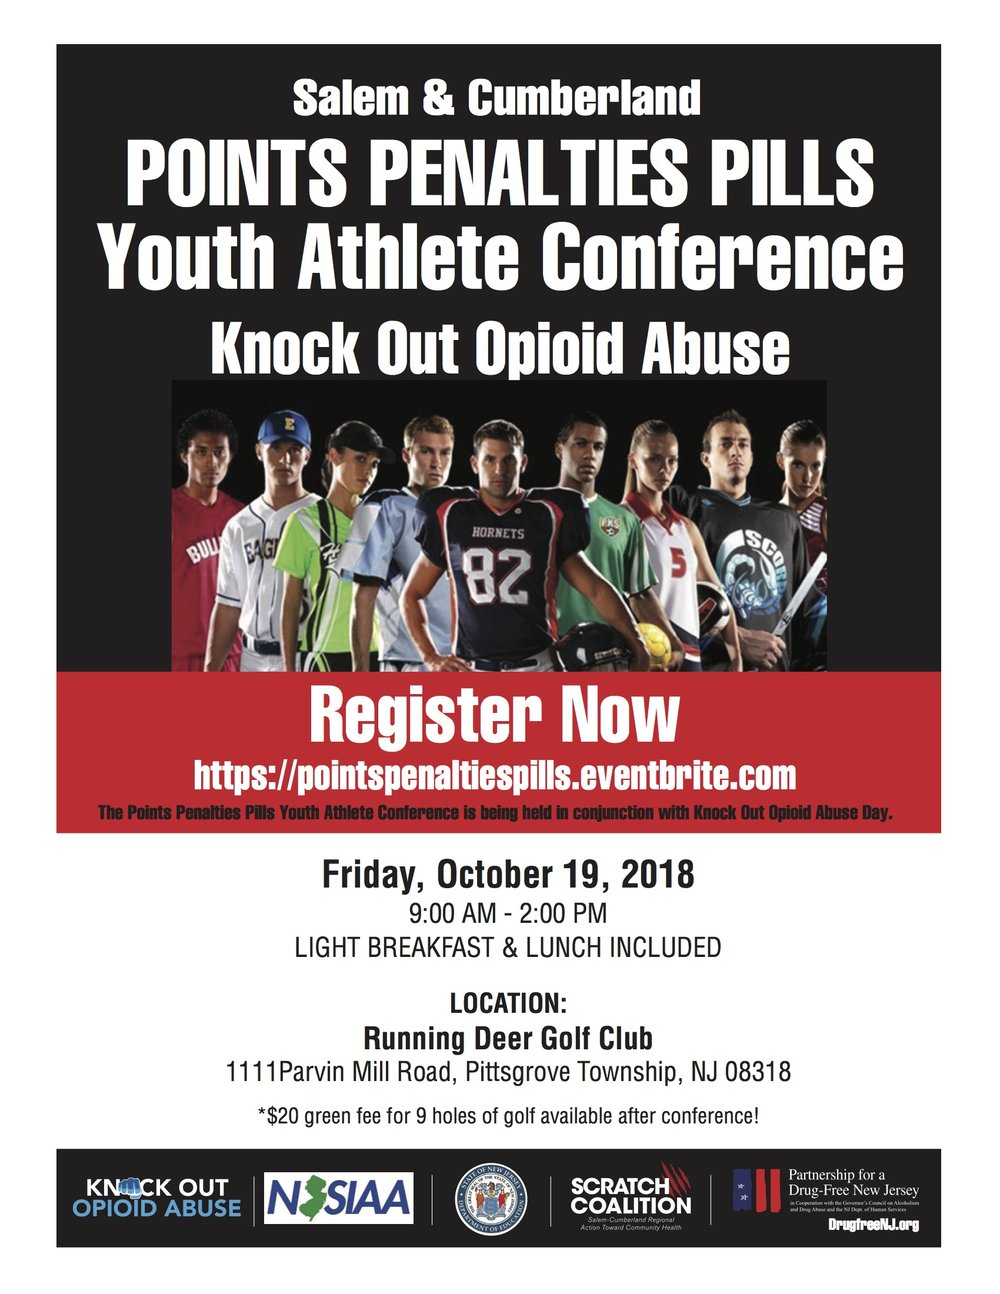 Points Penalties Pills Flyer.jpg